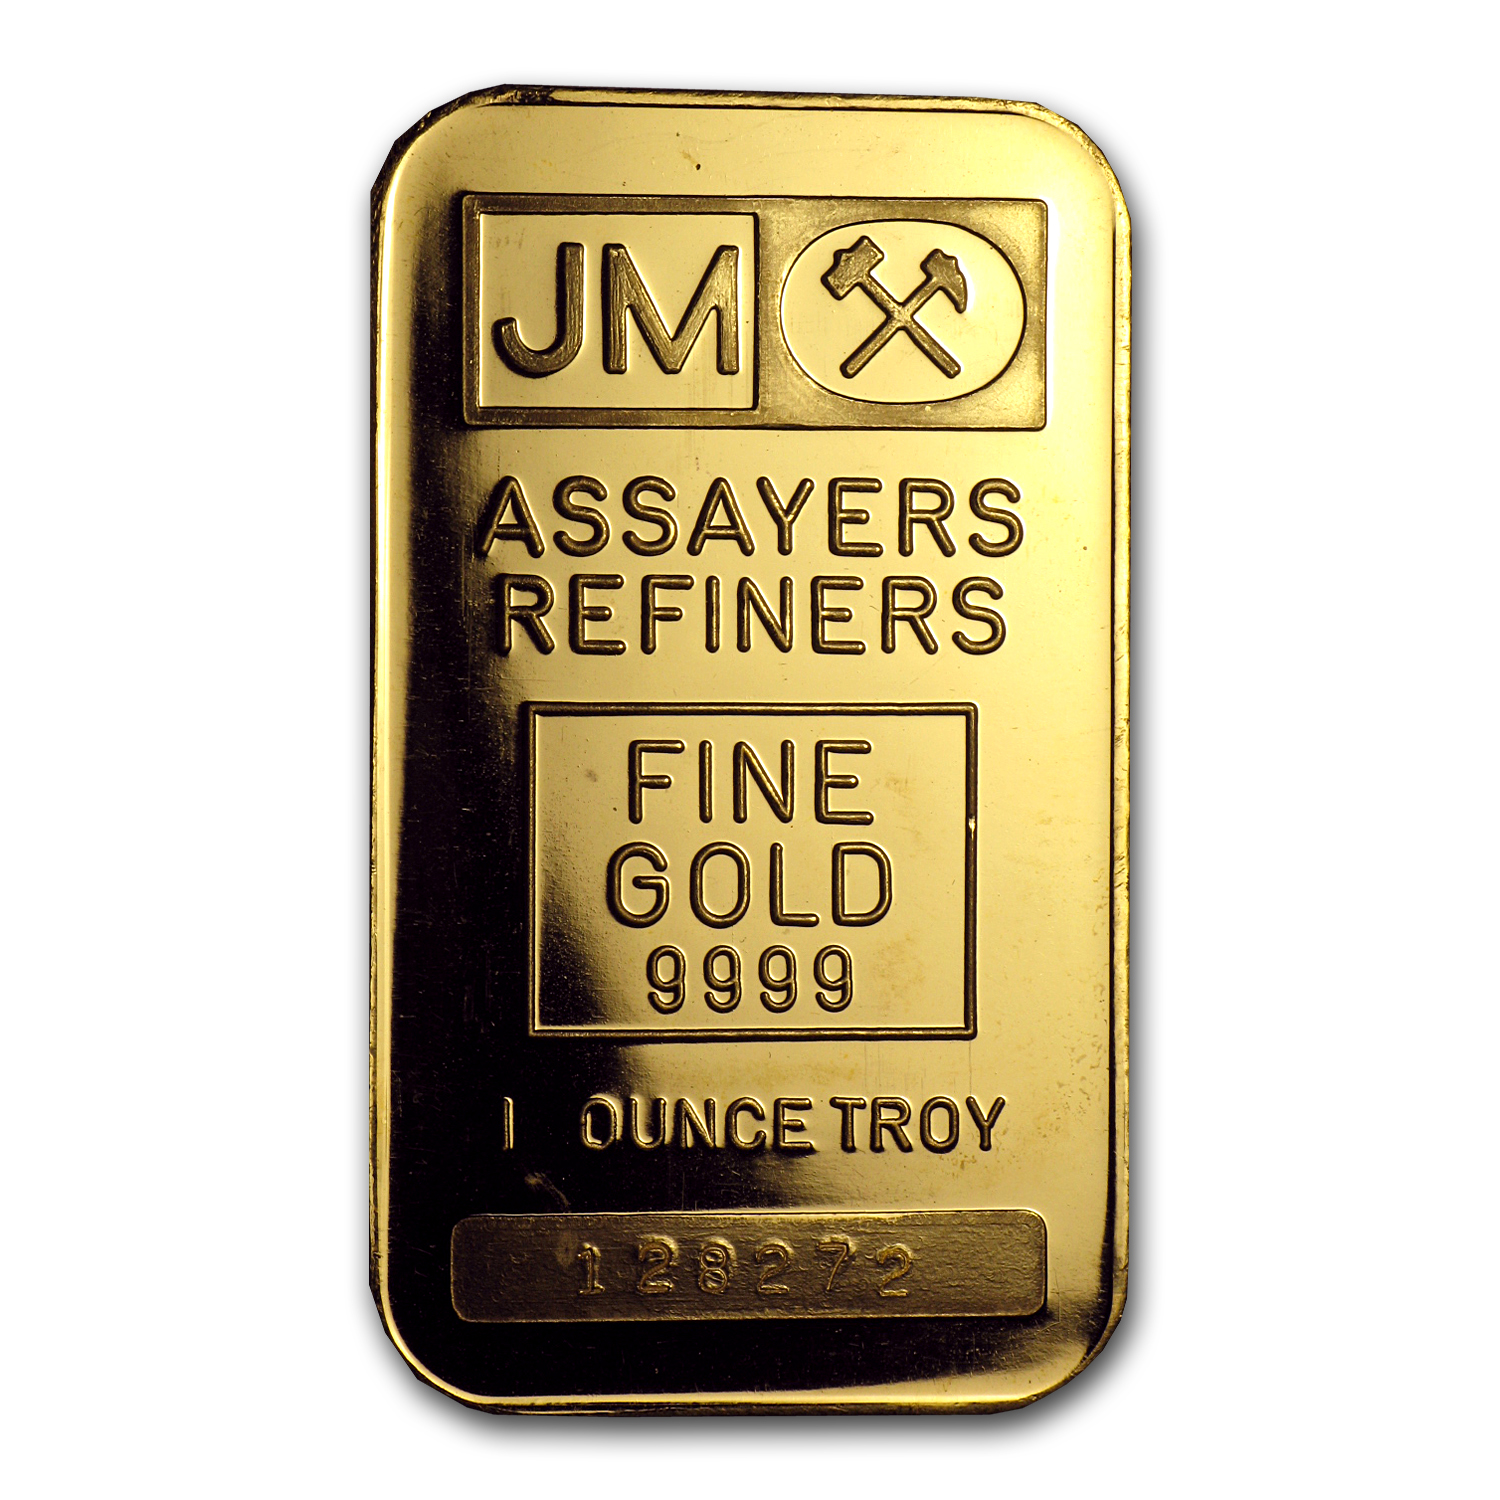 1 oz Gold Bars - Johnson Matthey (Plain Back, w/o Assay)